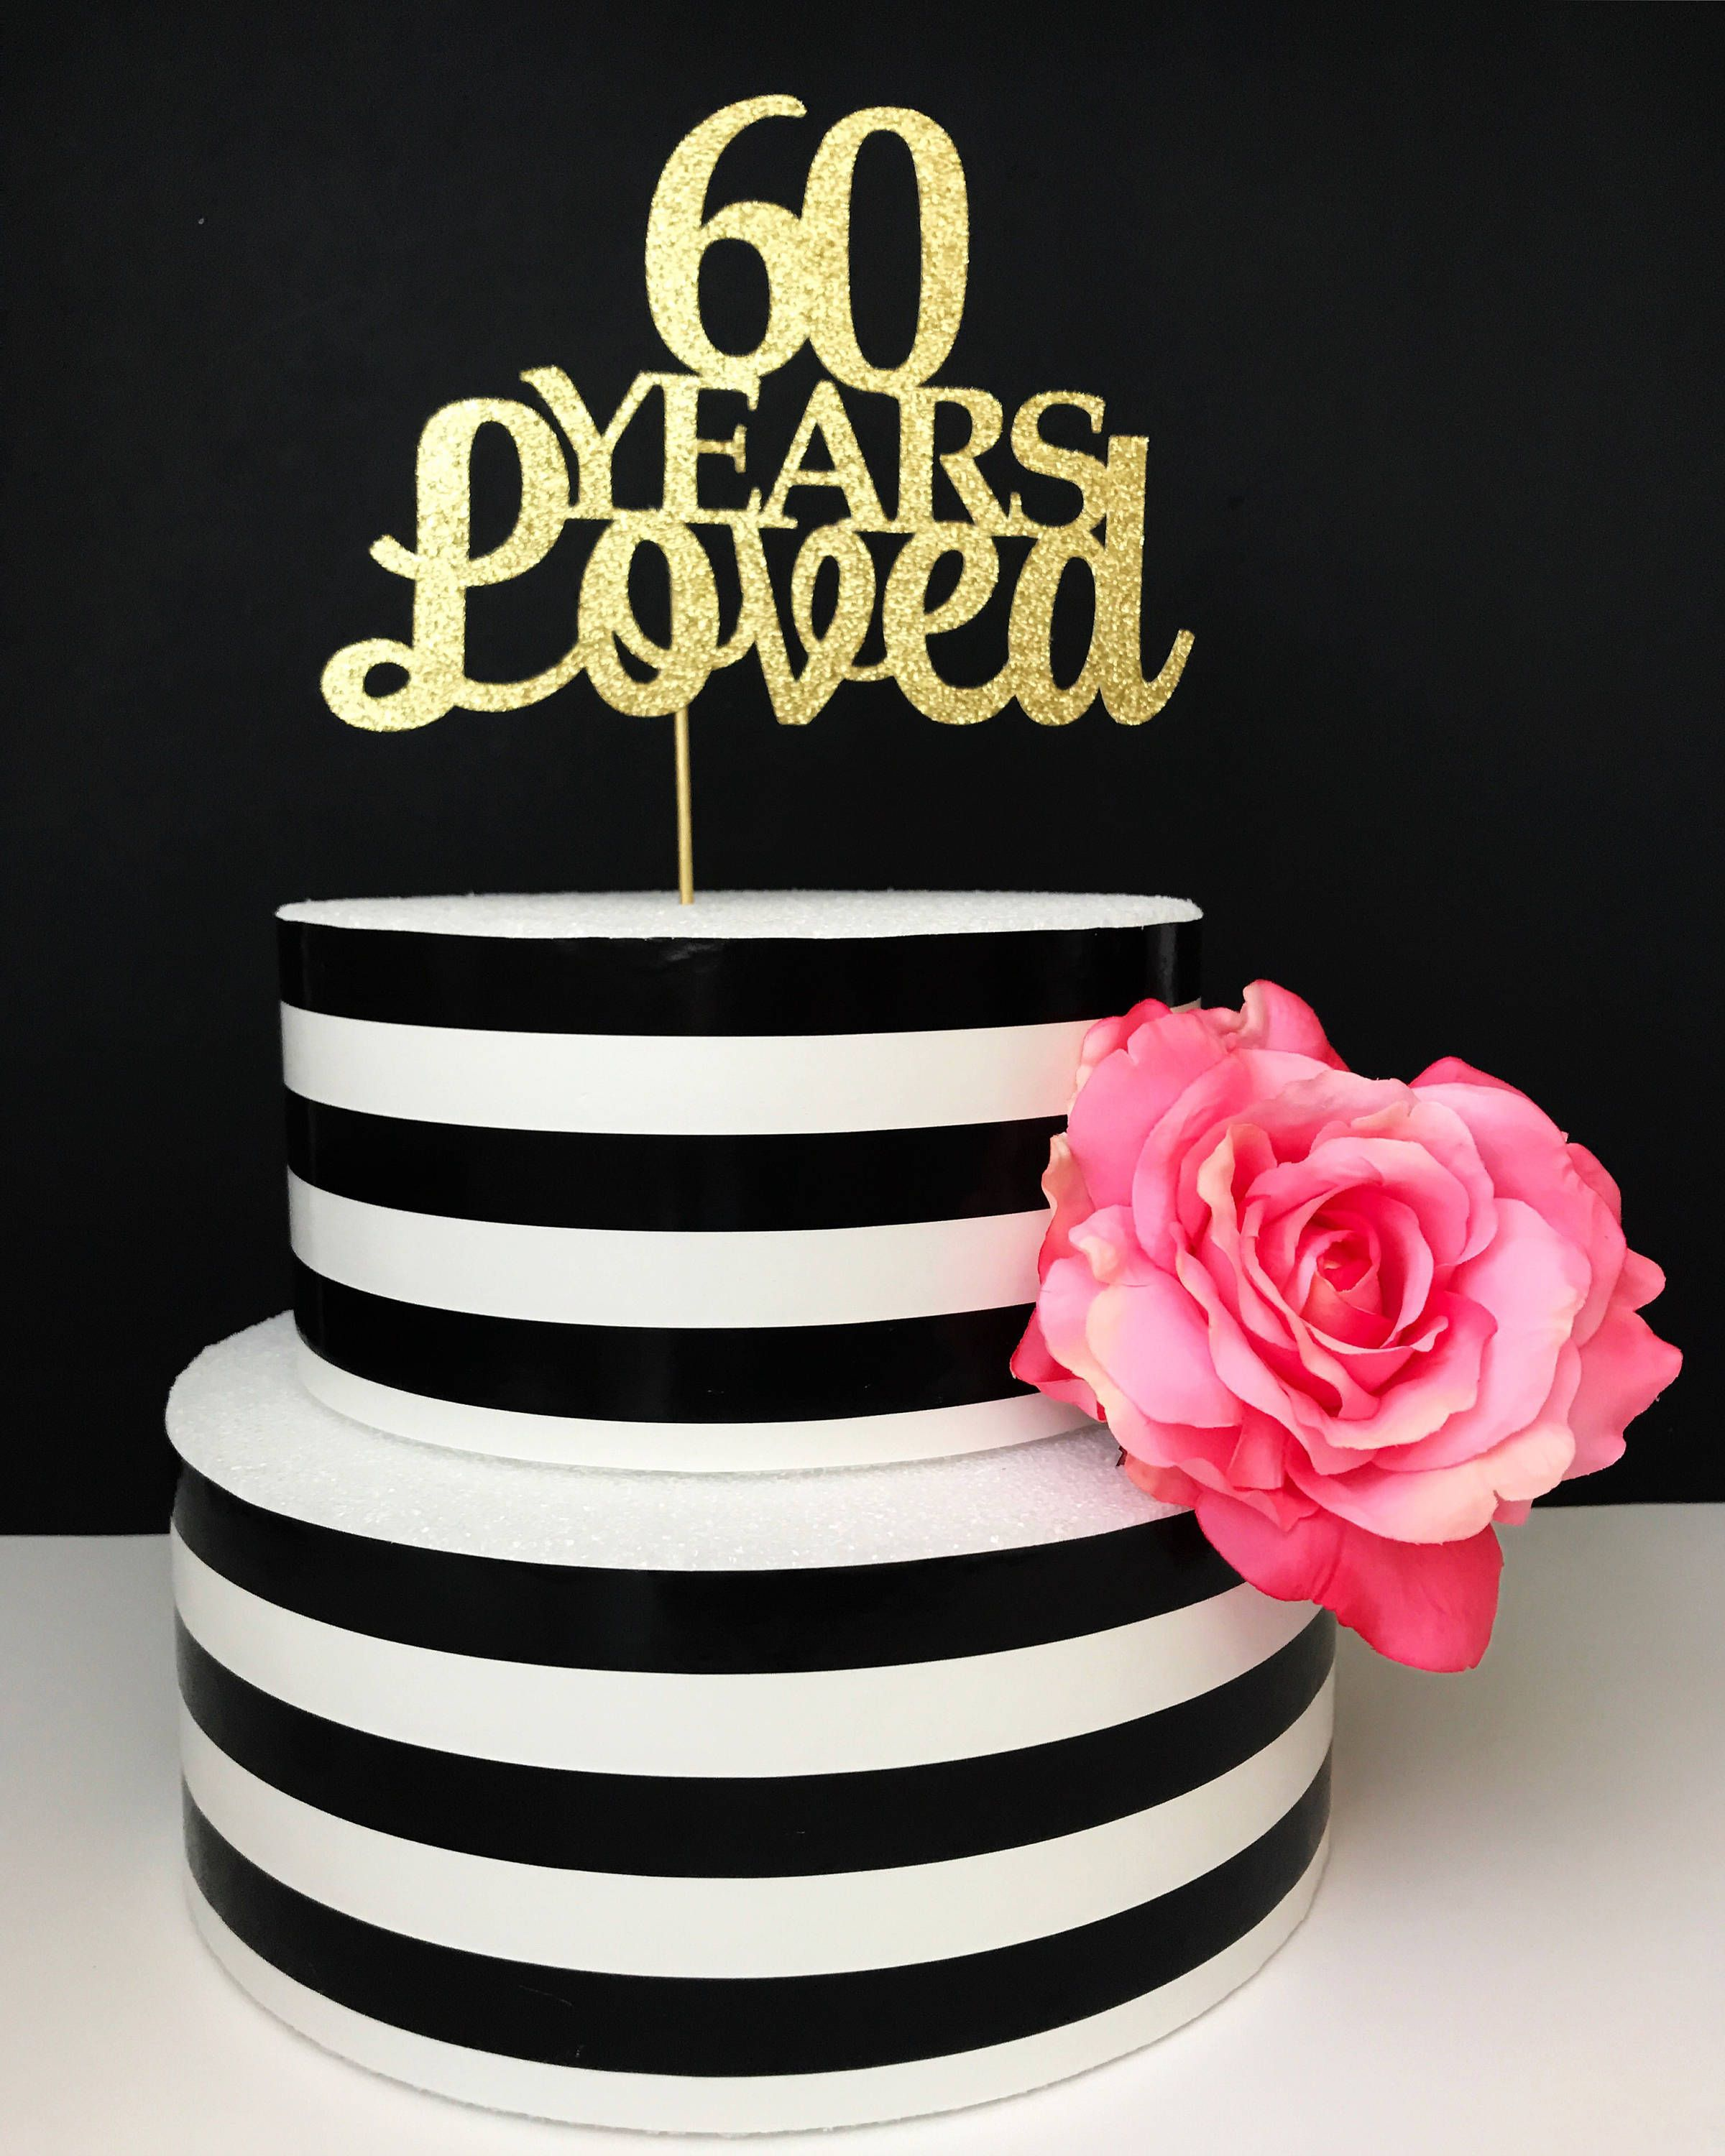 48++ 60th birthday cake toppers ideas in 2021